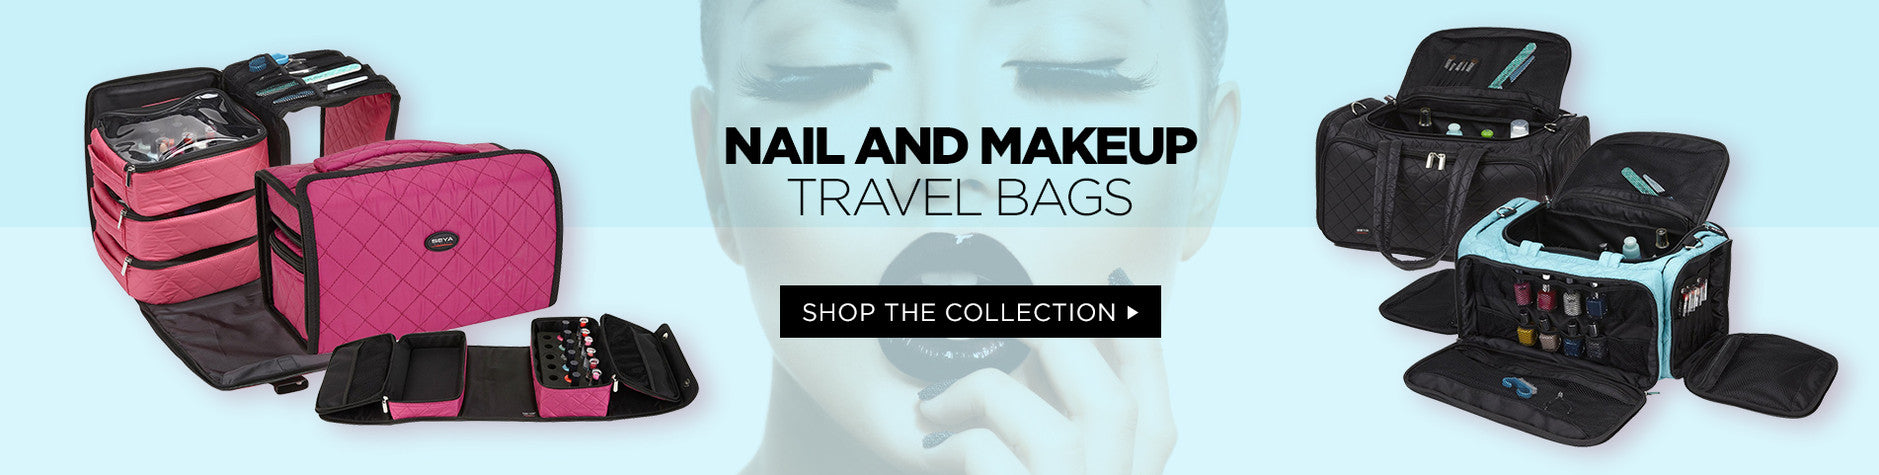 Nail and Makeup Travel Bags